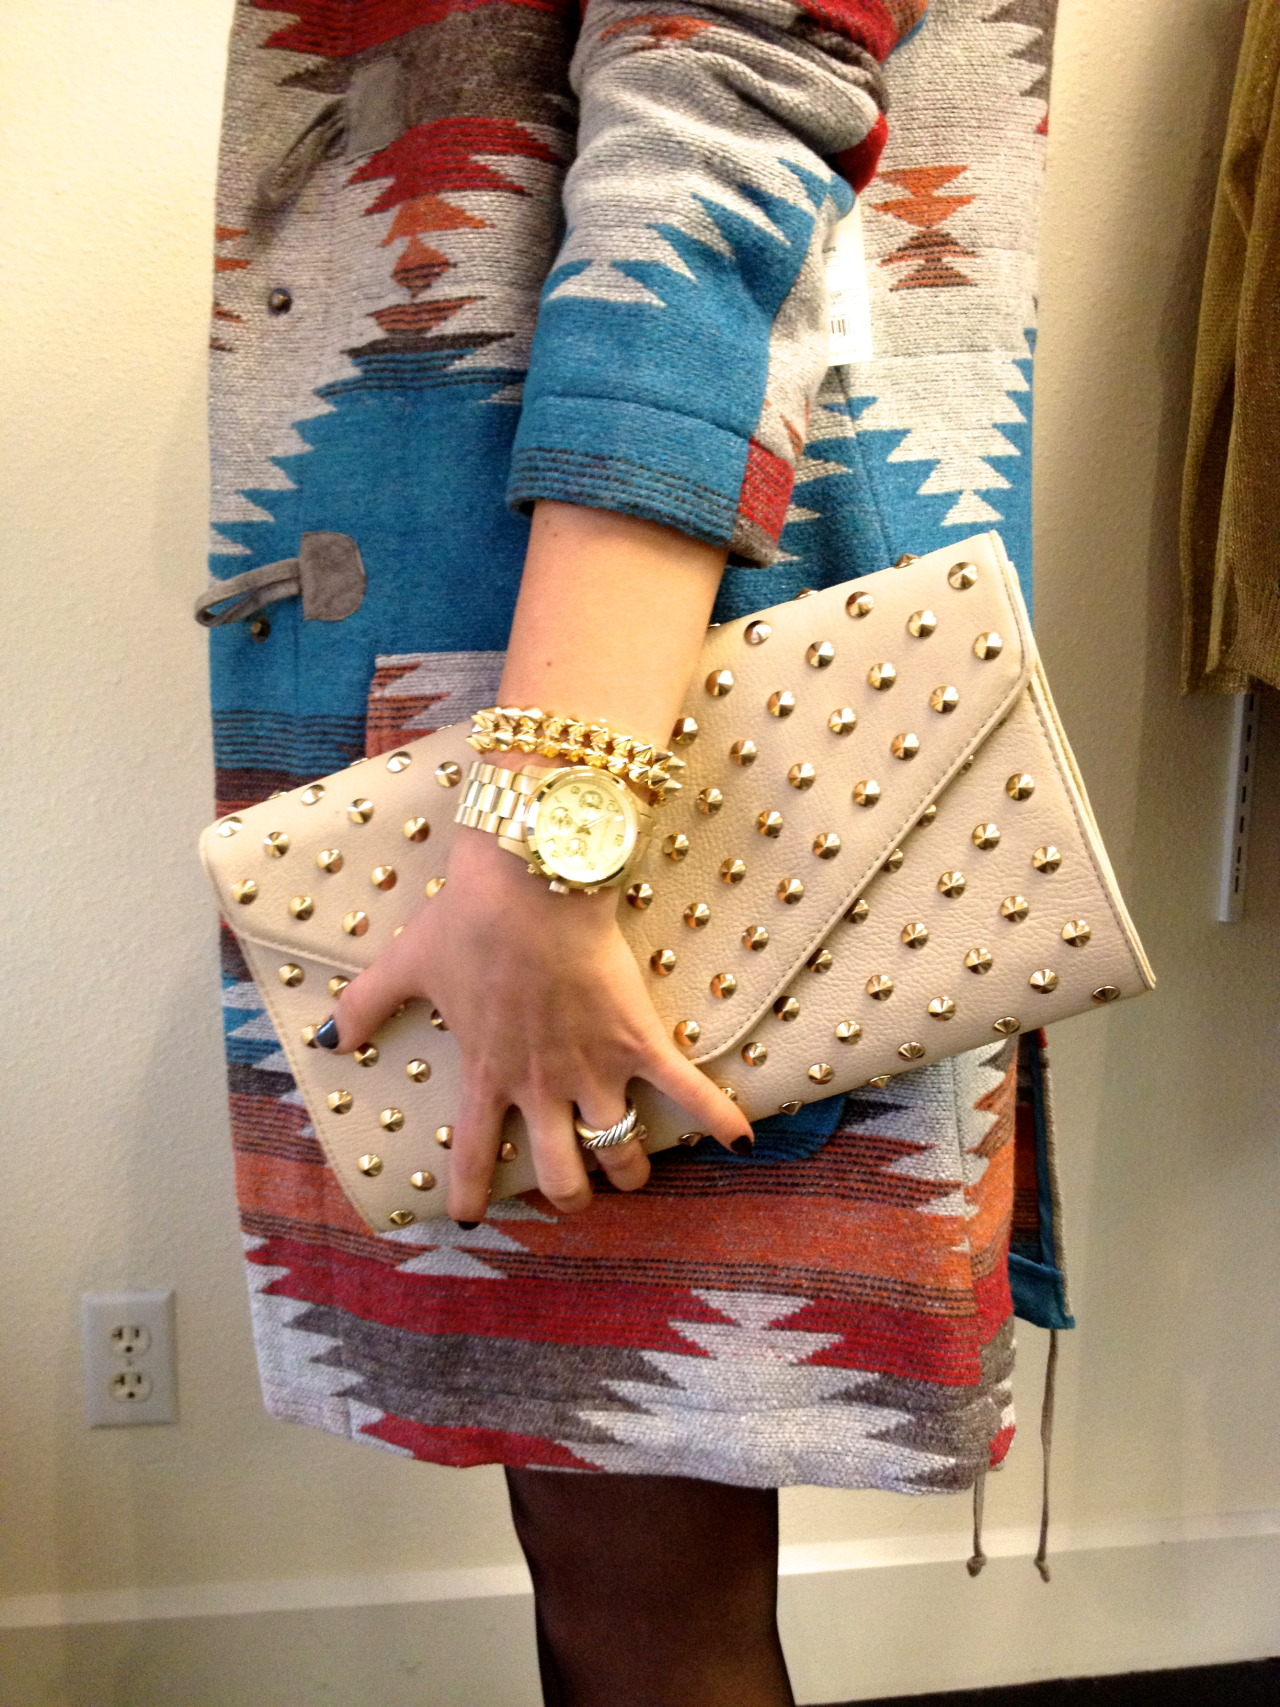 Clutch Candy Beehive clutch, BB Dakota coat, Michael Kors watch, Beehive bracelet, David Yurman ring Austin, Texas